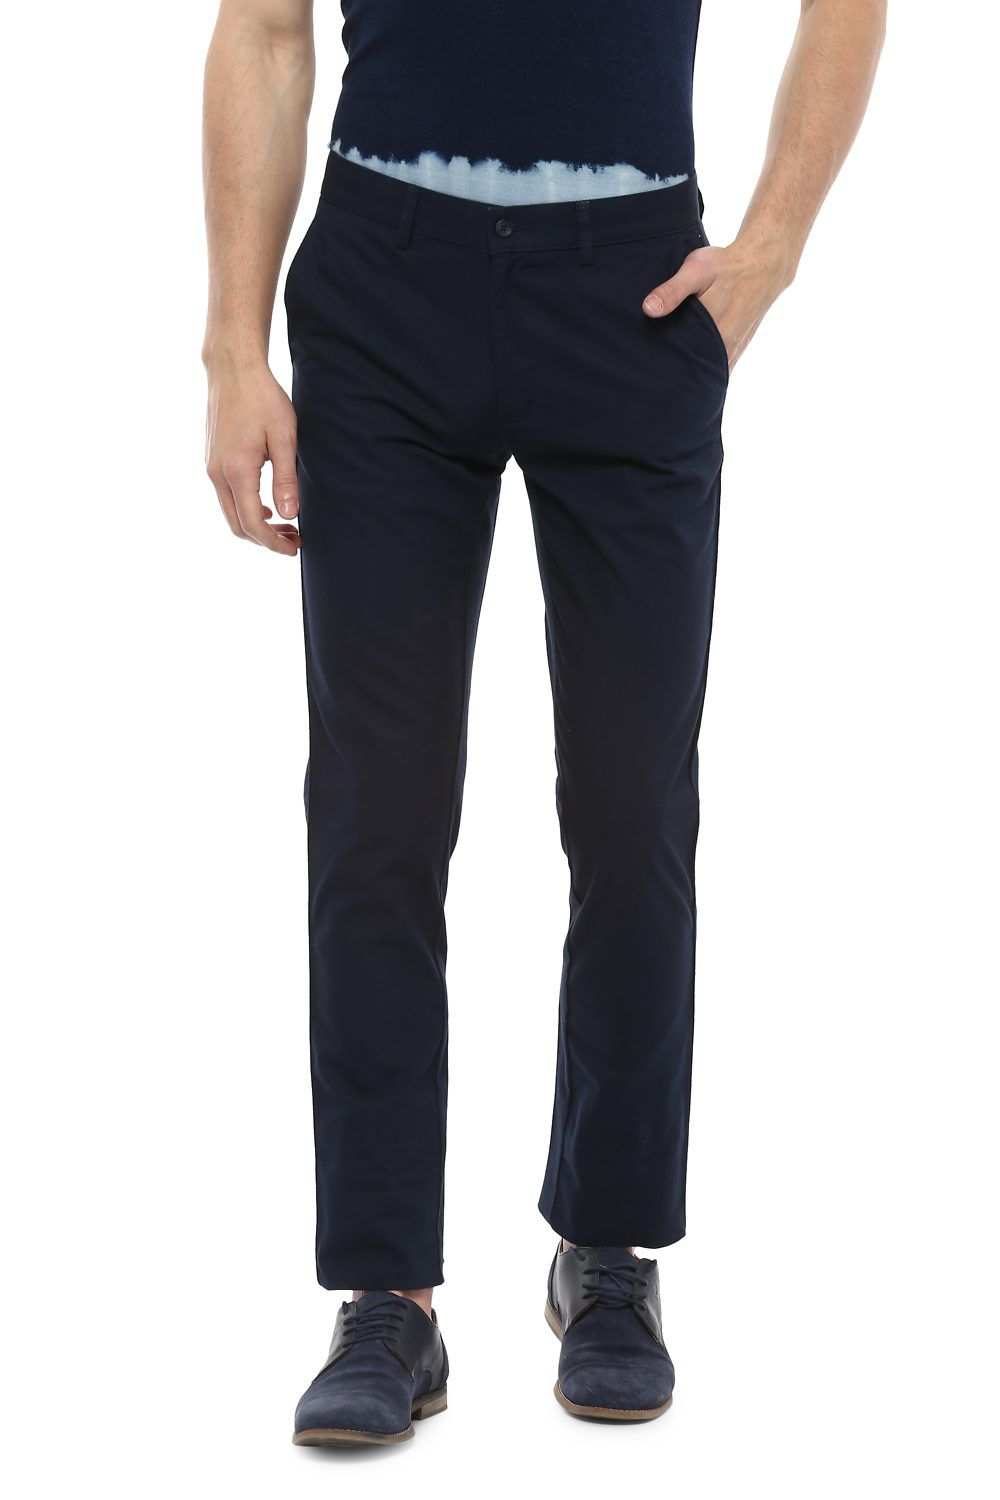 Peter England Blue Skinny -Fit Flat Trousers